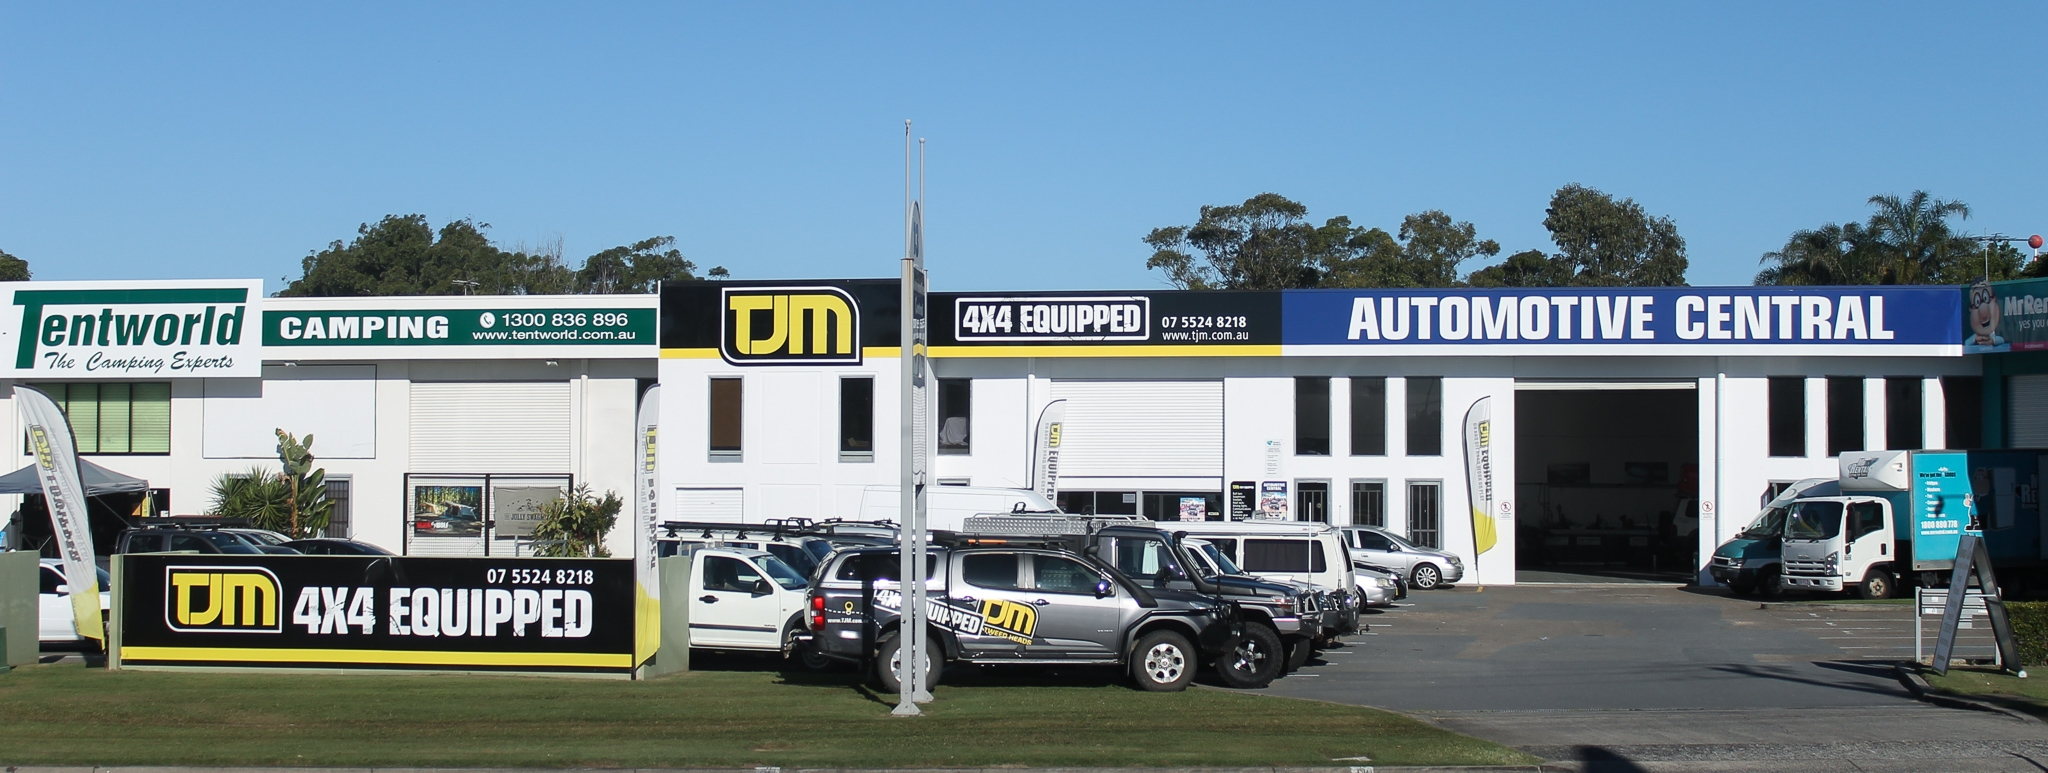 tjm tweed heads / automotive central